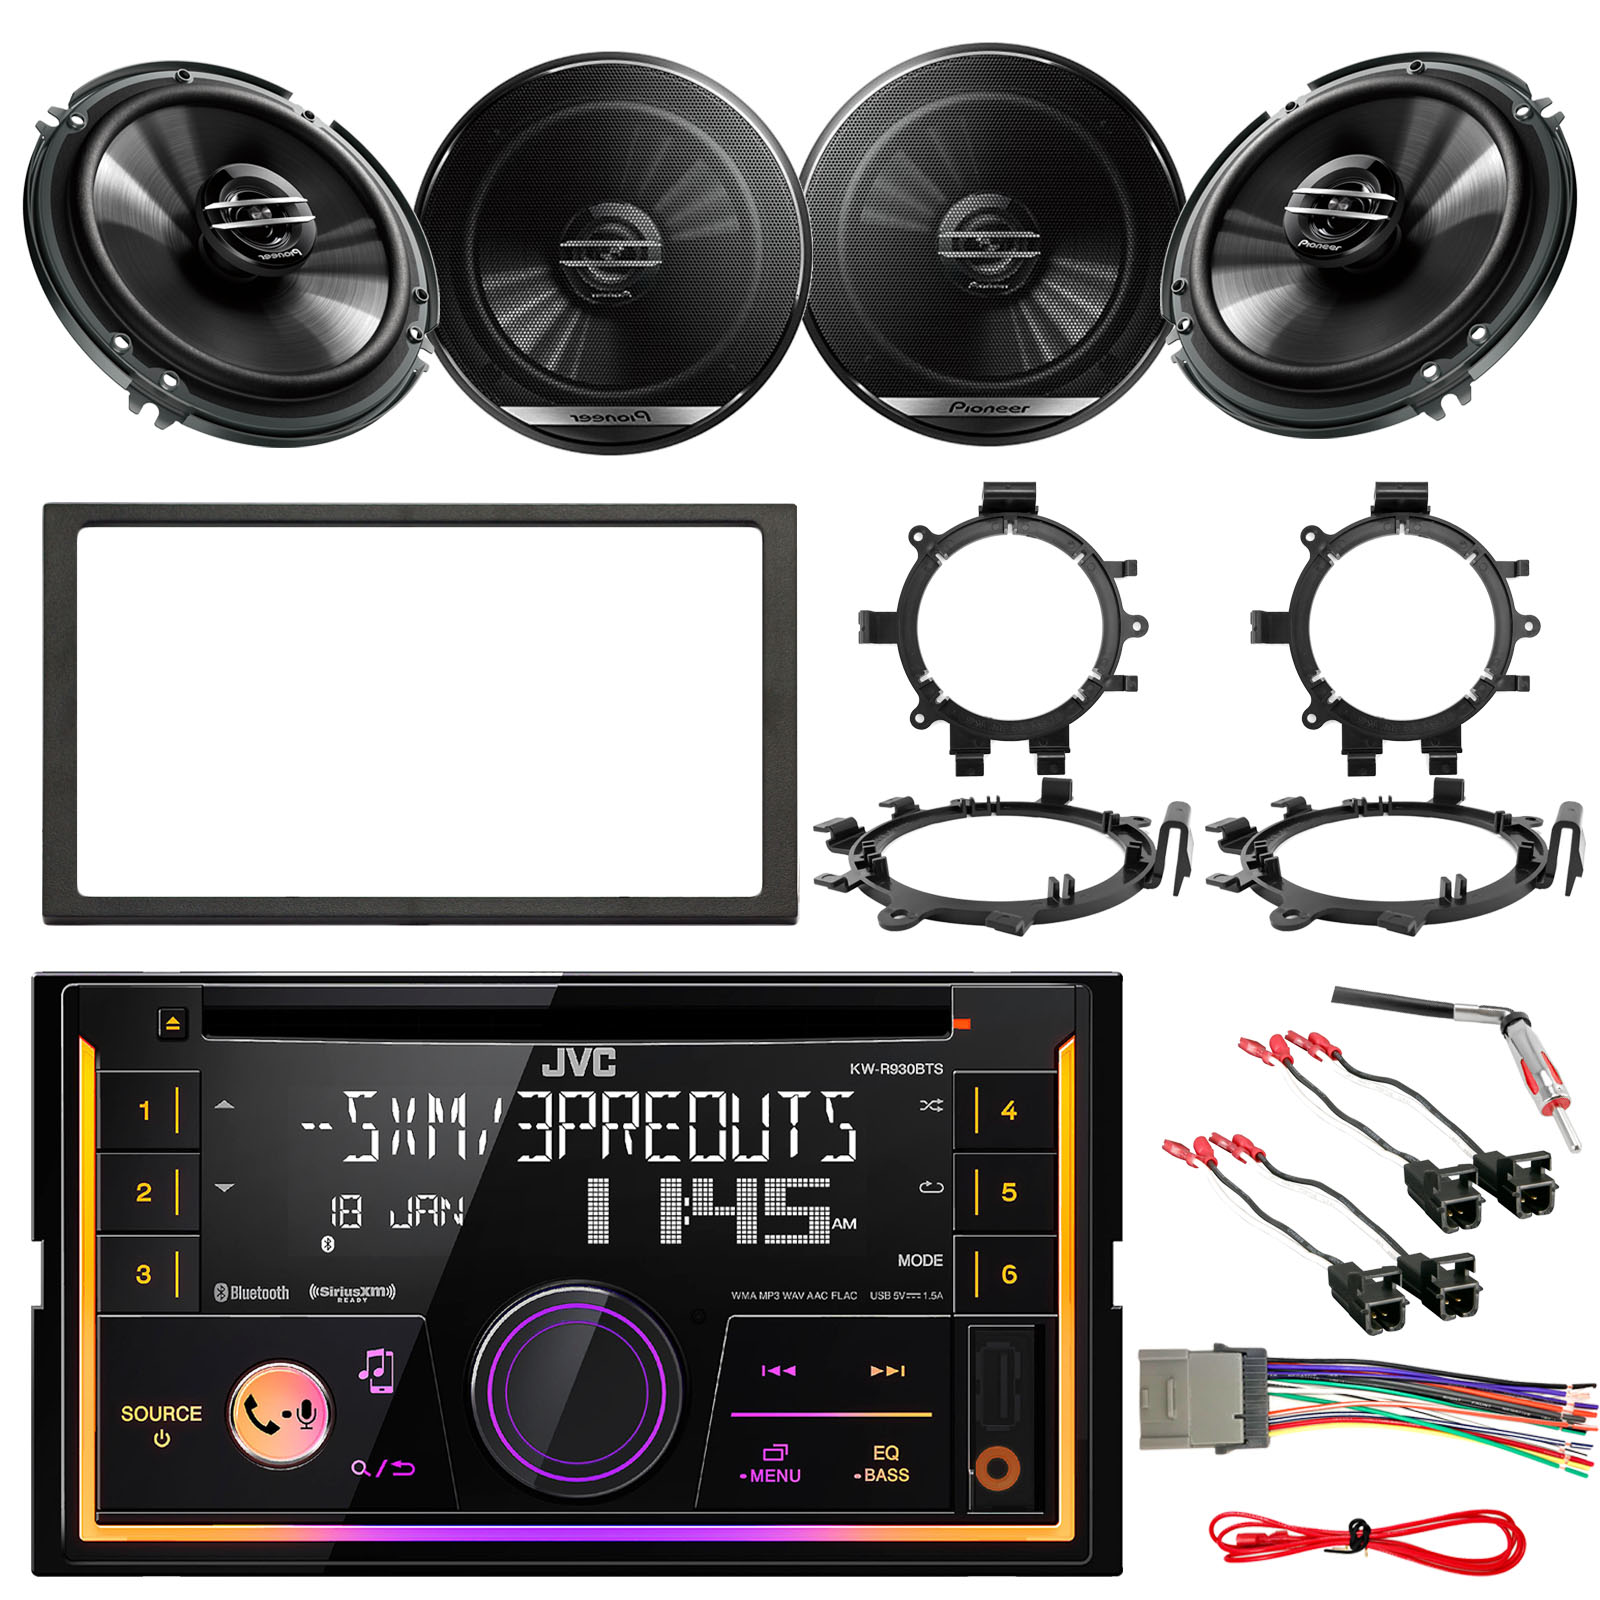 jvc kw r930bts double din bluetooth car cd player stereo